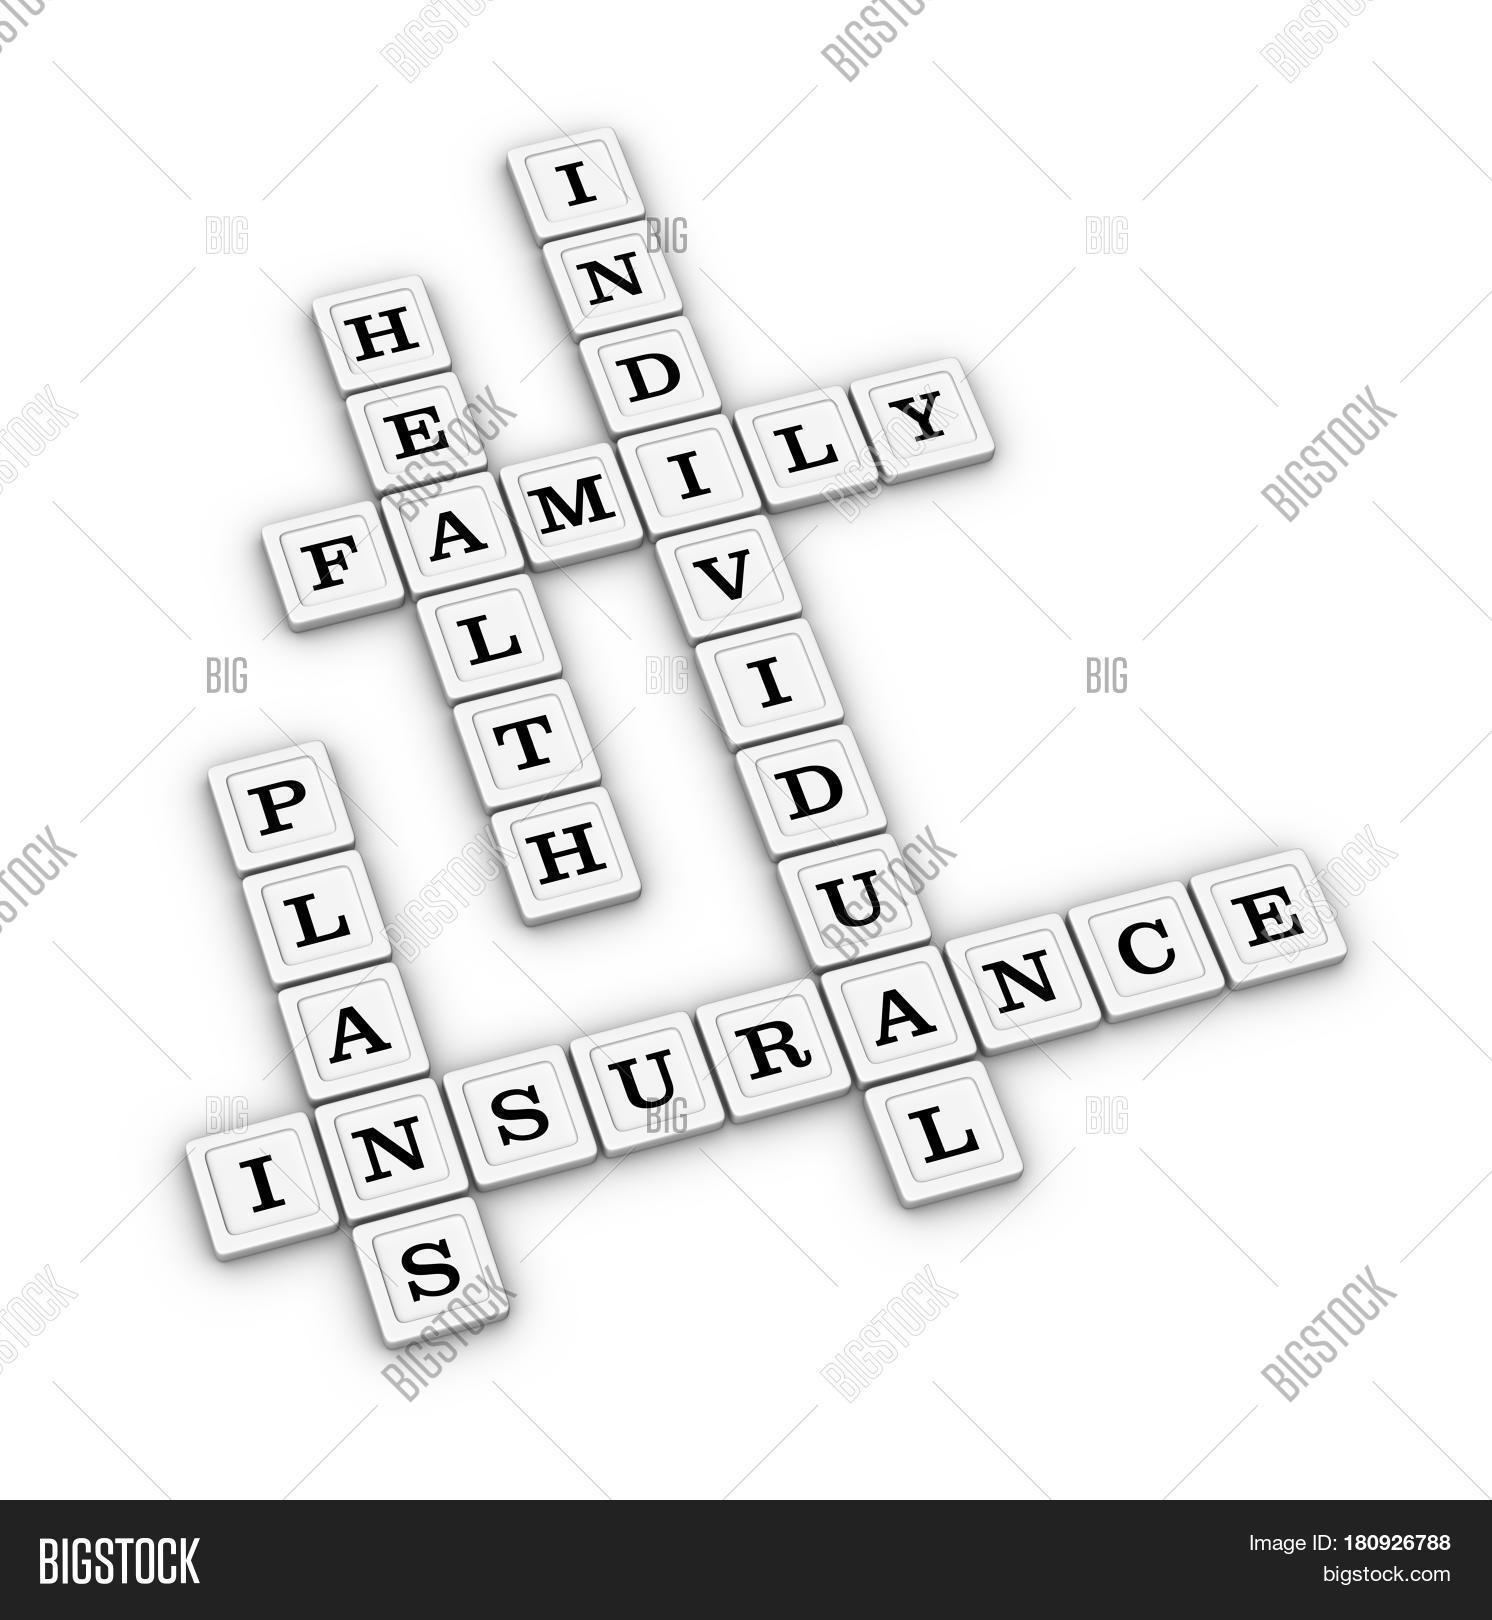 health insurance plans crossword image & photo | bigstock, Powerpoint templates